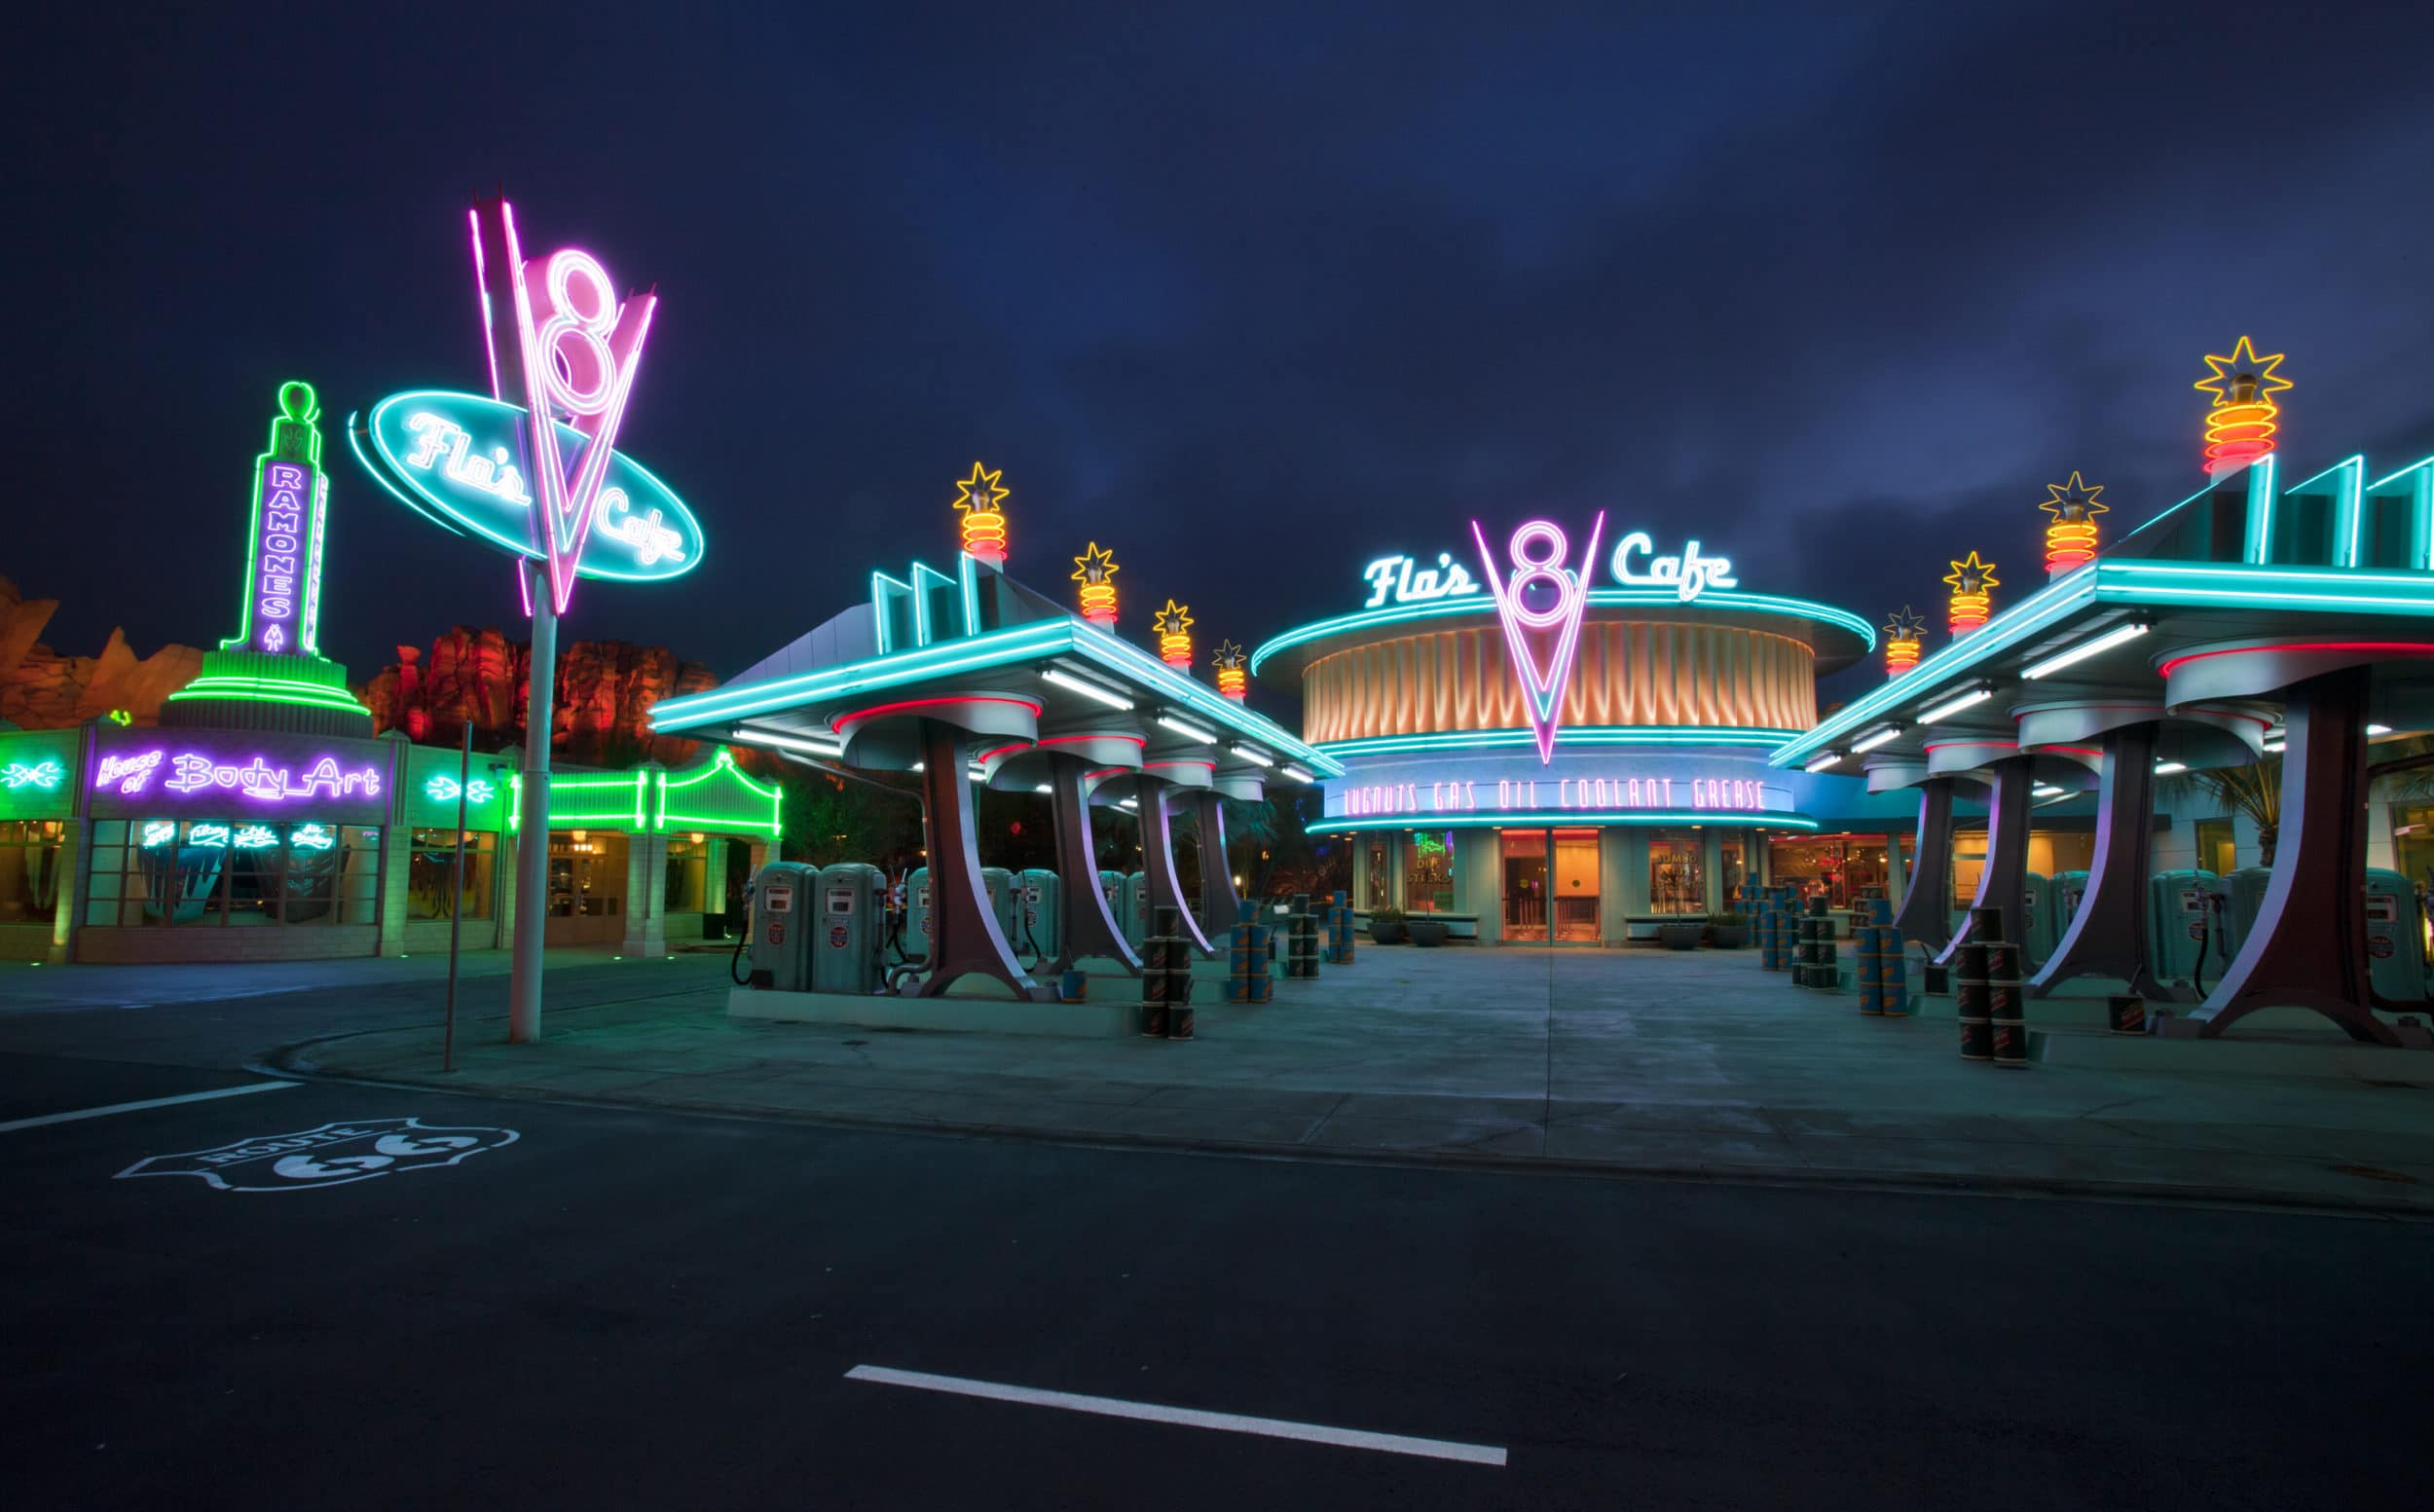 Flo's V8 Cafe at Disney California Adventure